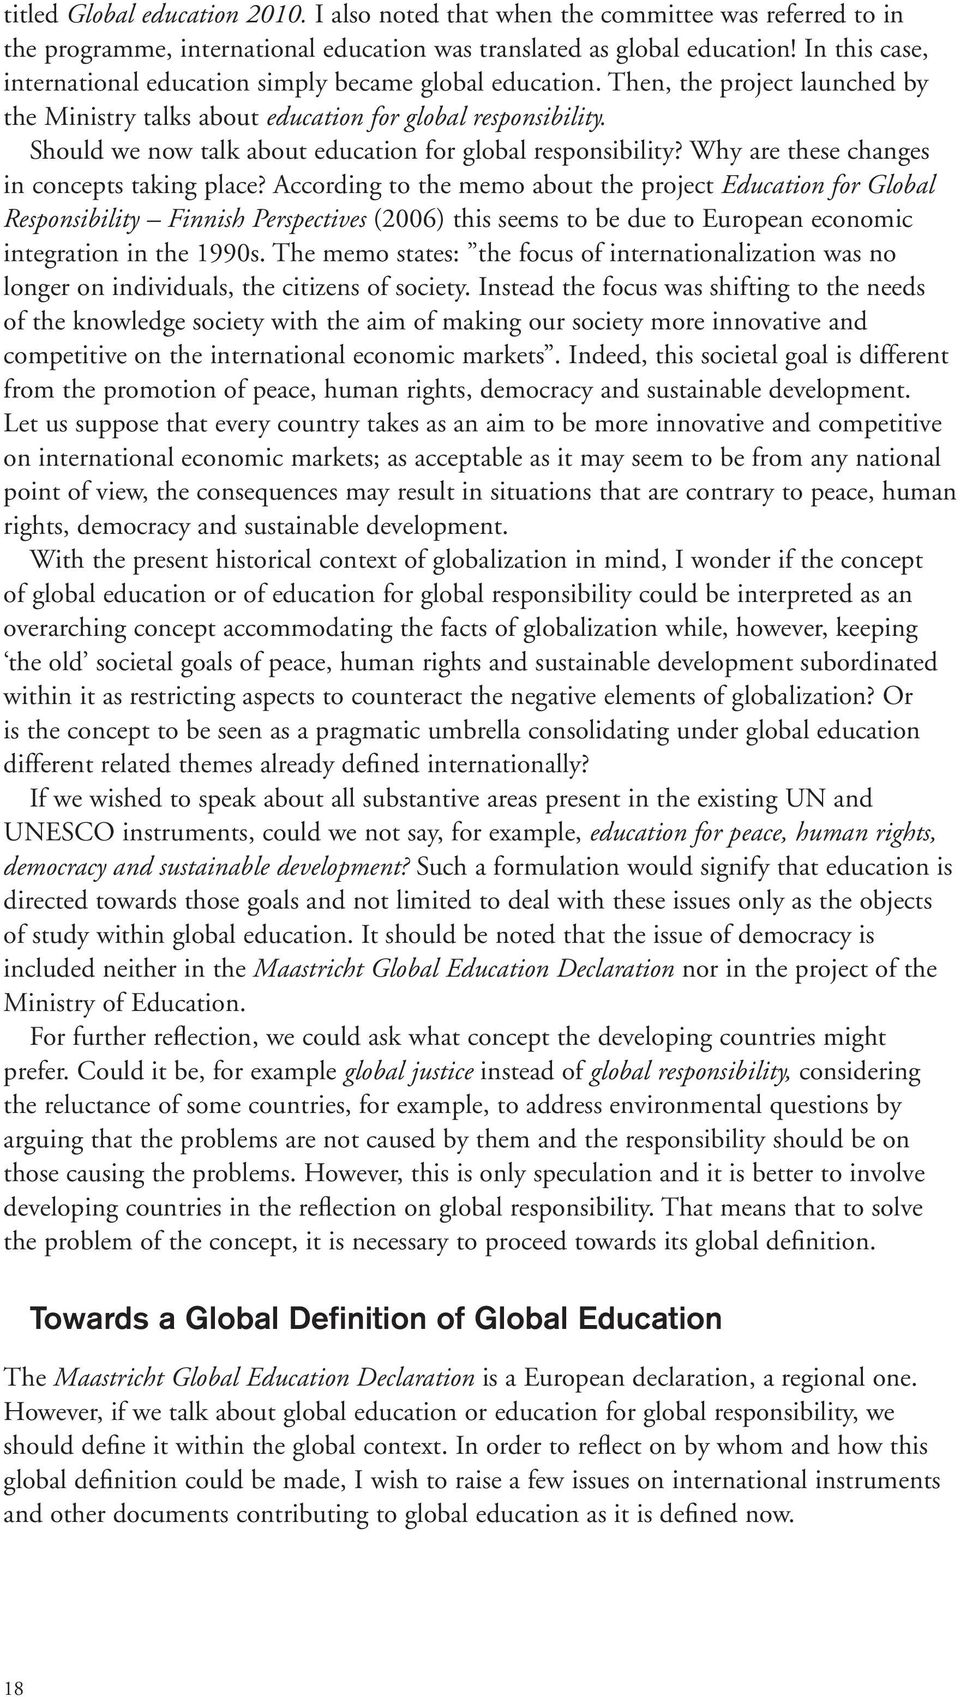 Should we now talk about education for global responsibility? Why are these changes in concepts taking place?